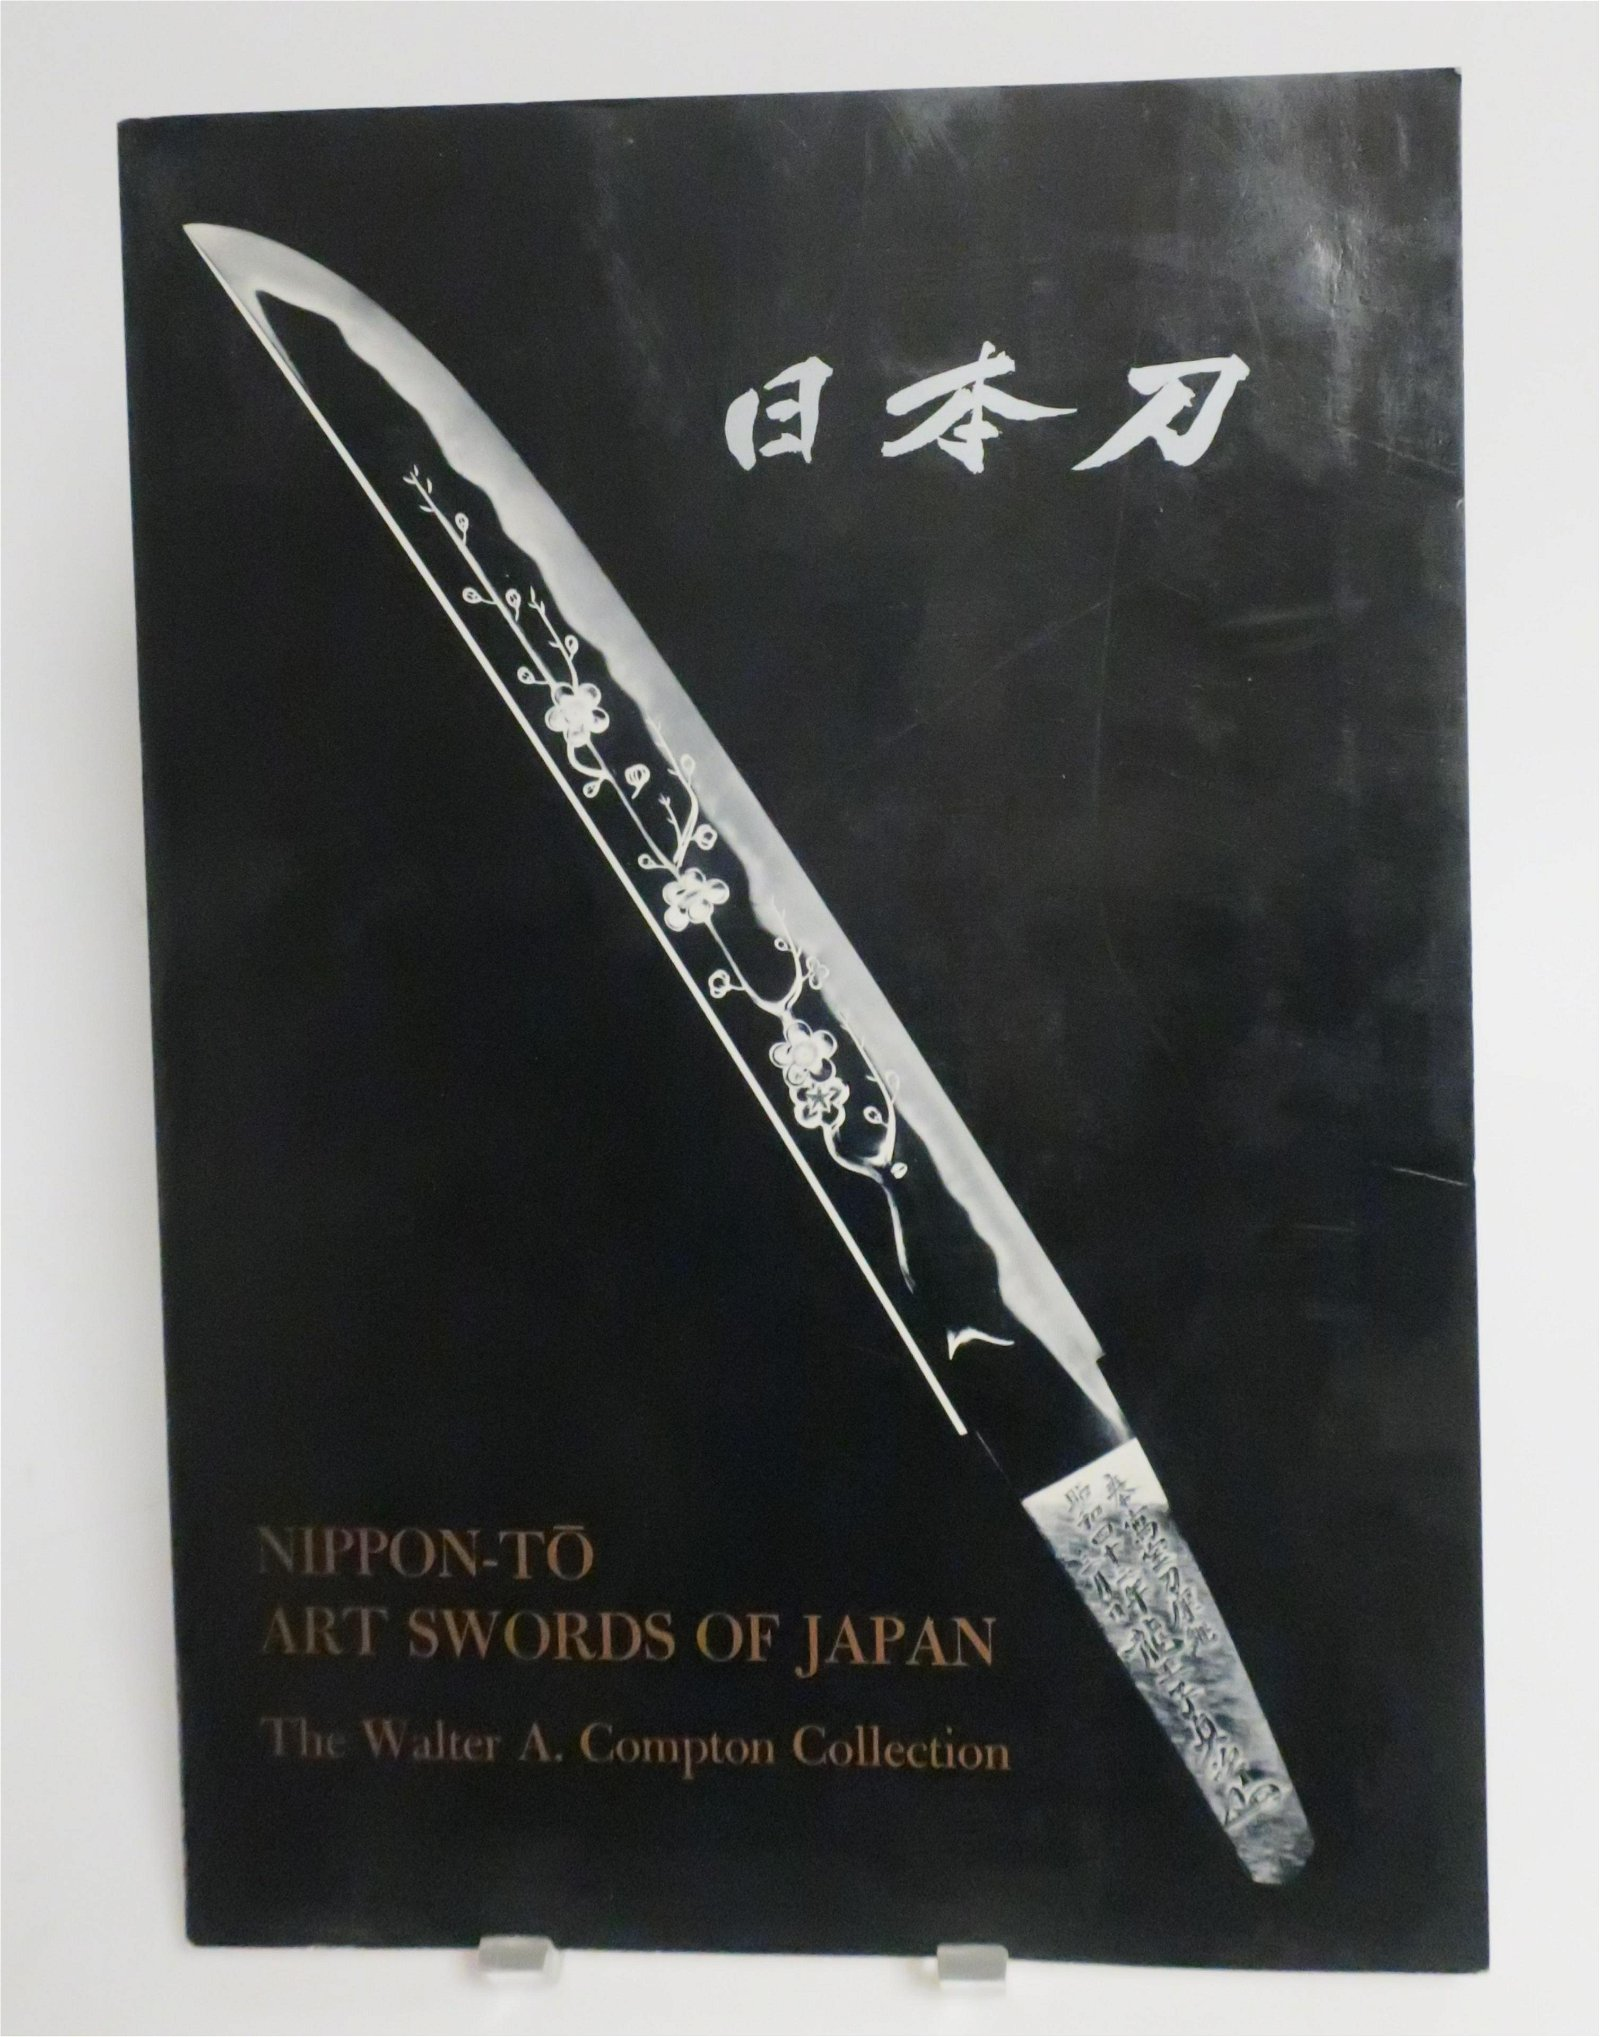 Nippon-To' Art Swords of Japan, Softcover-Signed